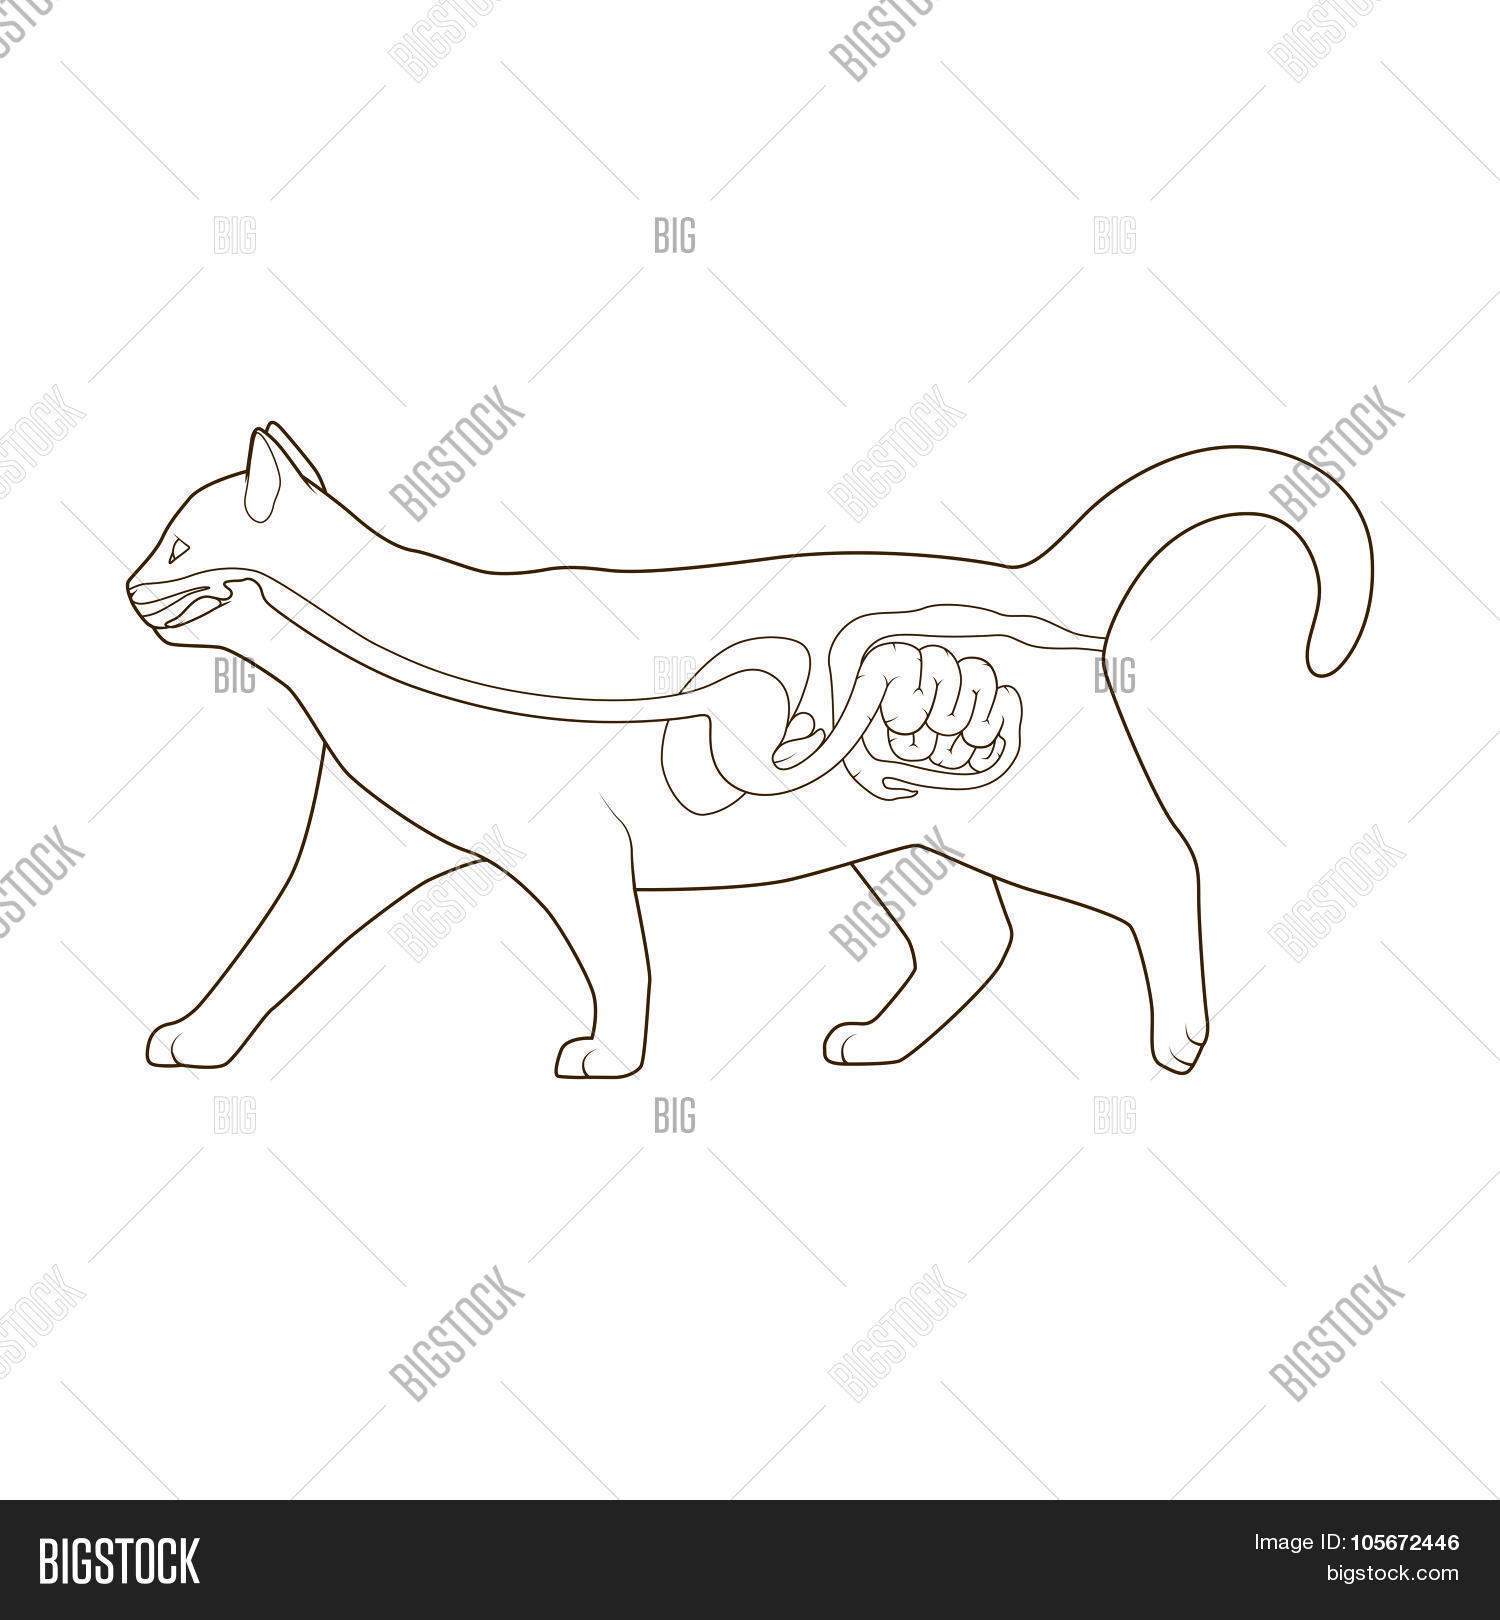 Detailed Cat Digestive System